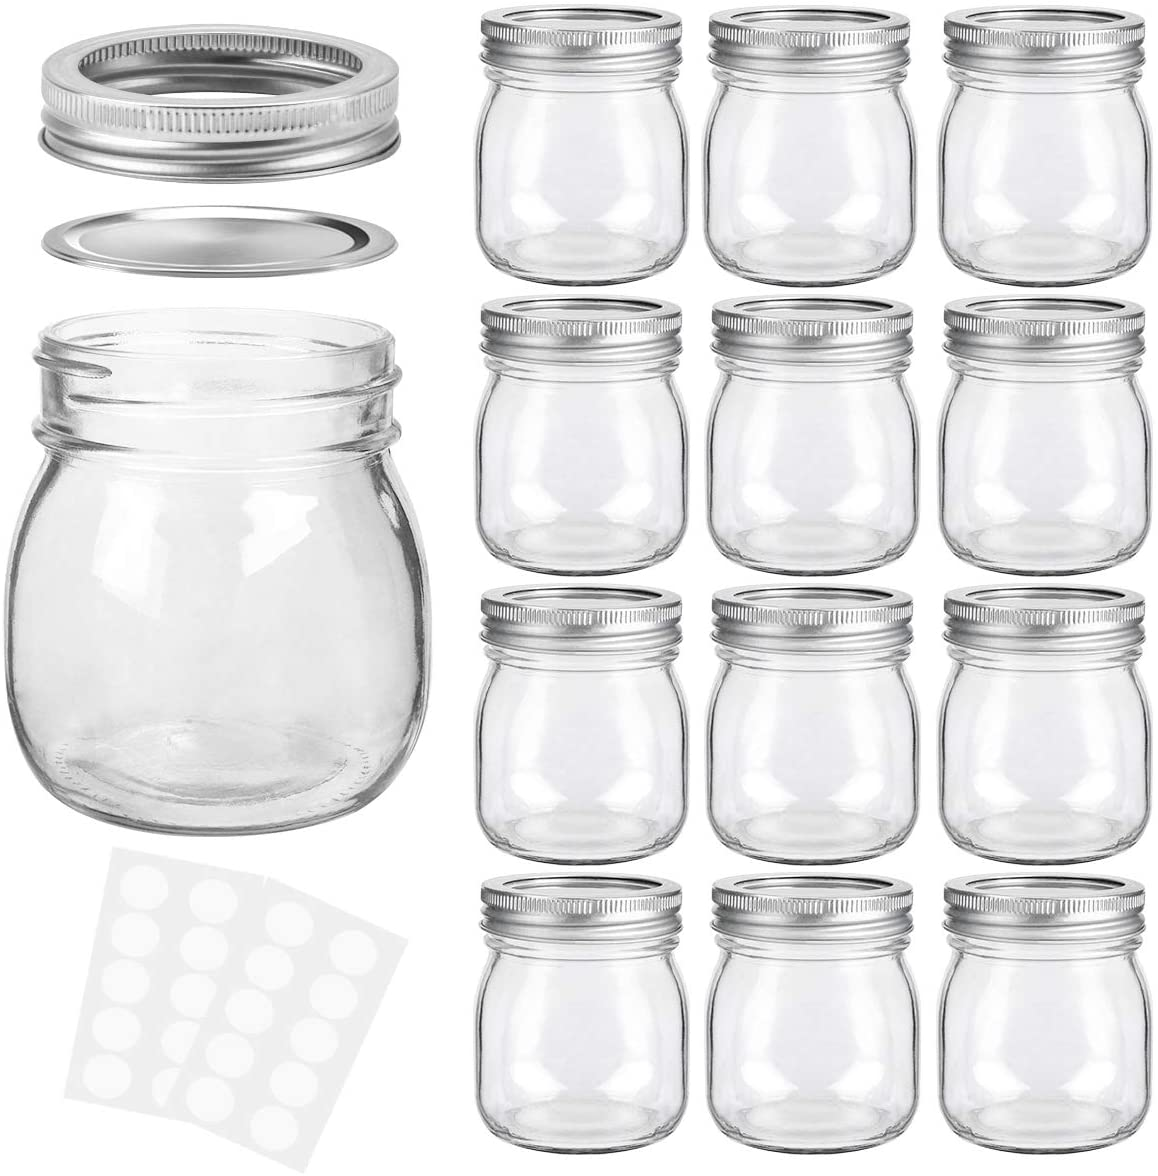 KAMOTA Mason 35% OFF Jars 10 oz With Regular J Lids for Ideal Bands excellence and